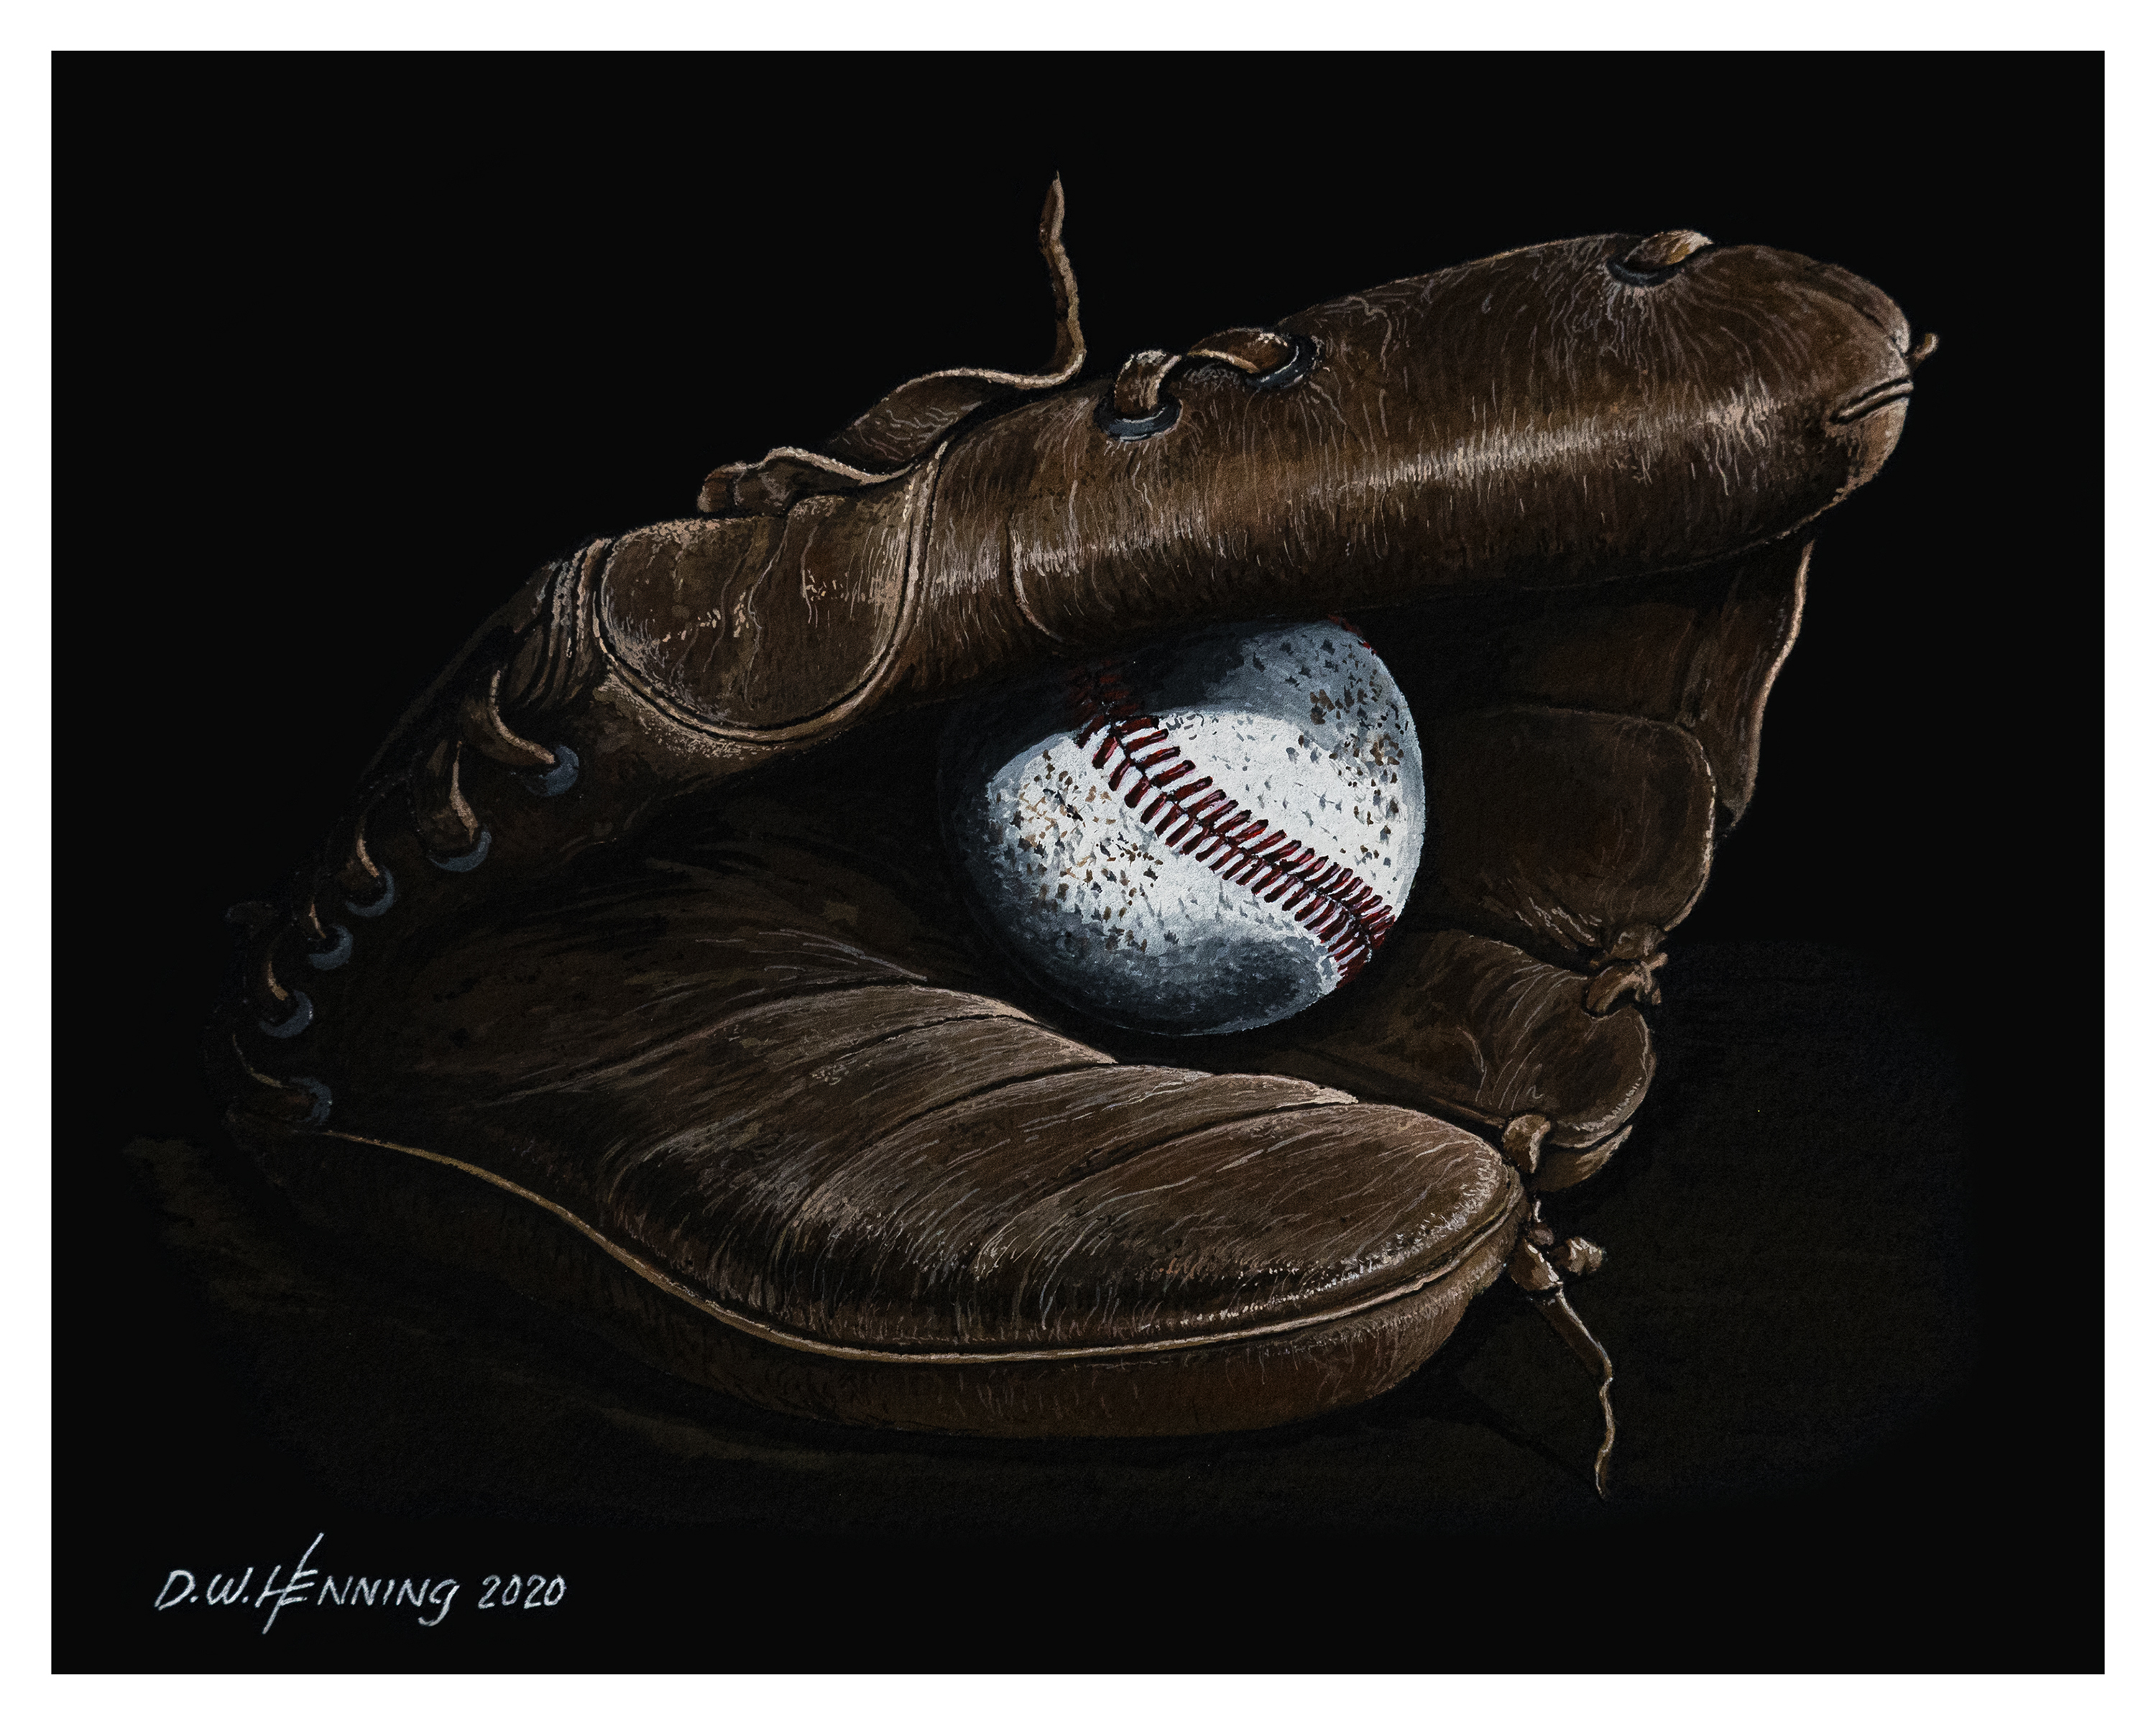 old ball and glove 8x10.jpg